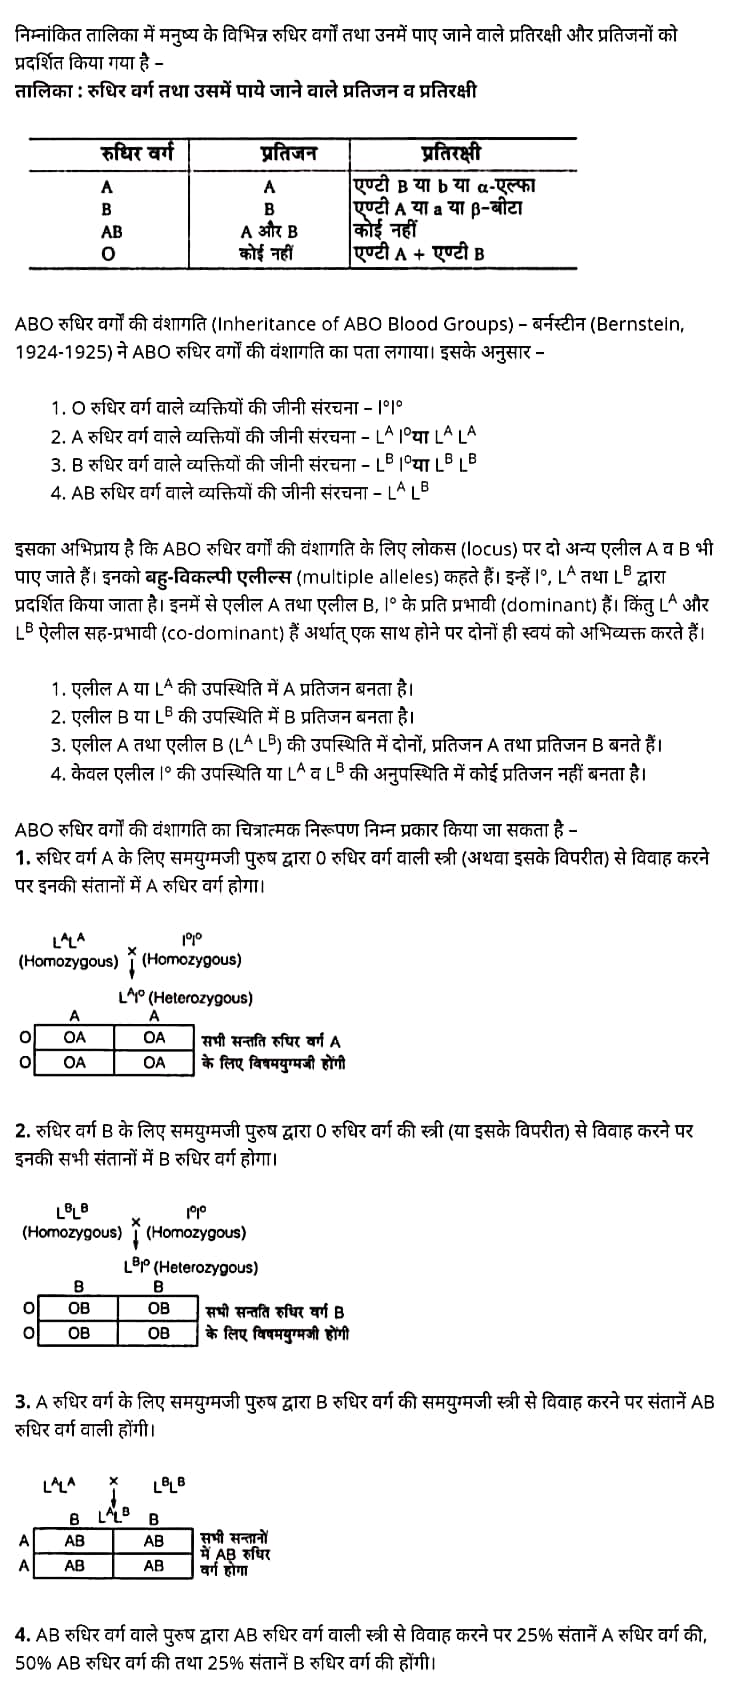 class 12   Biology   Chapter 5,  class 12   Biology   Chapter 5 ncert solutions in hindi,  class 12   Biology   Chapter 5 notes in hindi,  class 12   Biology   Chapter 5 question answer,  class 12   Biology   Chapter 5 notes,  12   class Biology   Chapter 5 in hindi,  class 12   Biology   Chapter 5 in hindi,  class 12   Biology   Chapter 5 important questions in hindi,  class 12   Biology    notes in hindi,   class 12   Biology   Chapter 5 test,  class 12   Biology   Chapter 5 pdf,  class 12   Biology   Chapter 5 notes pdf,  class 12   Biology   Chapter 5 exercise solutions,  class 12   Biology   Chapter 5, class 12   Biology   Chapter 5 notes study rankers,  class 12   Biology   Chapter 5 notes,  class 12   Biology   notes,   Biology    class 12   notes pdf,  Biology   class 12   notes 2021 ncert,  Biology   class 12   pdf,  Biology    book,  Biology   quiz class 12  ,   12  th Biology    book up board,  up board 12  th Biology   notes,   कक्षा 12   जीव विज्ञान  अध्याय 5, कक्षा 12   जीव विज्ञान  का अध्याय 5 ncert solution in hindi, कक्षा 12   जीव विज्ञान  के अध्याय 5 के नोट्स हिंदी में, कक्षा 12   का जीव विज्ञान  अध्याय 5 का प्रश्न उत्तर, कक्षा 12   जीव विज्ञान  अध्याय 5 के नोट्स, 12   कक्षा जीव विज्ञान  अध्याय 5 हिंदी में, कक्षा 12   जीव विज्ञान  अध्याय 5 हिंदी में,कक्षा 12   जीव विज्ञान  अध्याय 5 महत्वपूर्ण प्रश्न हिंदी में, कक्षा 12   के जीव विज्ञान  के नोट्स हिंदी में,  जीव विज्ञान  कक्षा 12   नोट्स pdf,  जीव विज्ञान  कक्षा 12   नोट्स 2021 ncert,  जीव विज्ञान  कक्षा 12   pdf,  जीव विज्ञान  पुस्तक,  जीव विज्ञान  की बुक,  जीव विज्ञान  प्रश्नोत्तरी class 12  , 12   वीं जीव विज्ञान  पुस्तक up board,  बिहार बोर्ड 12  पुस्तक वीं जीव विज्ञान  नोट्स,    12th Biology    book in hindi, 12  th Biology    notes in hindi, cbse books for class 12  , cbse books in hindi, cbse ncert books, class 12   Biology   notes in hindi,  class 12   hindi ncert solutions, Biology   2020, Biology   2021, Biology   2022, Biology   book class 12  , Biology    book in hindi, Biology   class 12   in hindi, Biology   notes for class 12   up board in hindi, ncert all books, ncert app in hindi, ncert book solution, ncert books class 10, ncert books class 12  , ncert books for class 7, ncert books for upsc in hindi, ncert books in hindi class 10, ncert books in hindi for class 12 Biology  , ncert books in hindi for class 6, ncert books in hindi pdf, ncert class 12 hindi book, ncert english book, ncert Biology    book in hindi, ncert Biology    books in hindi pdf, ncert Biology  class 12  ,